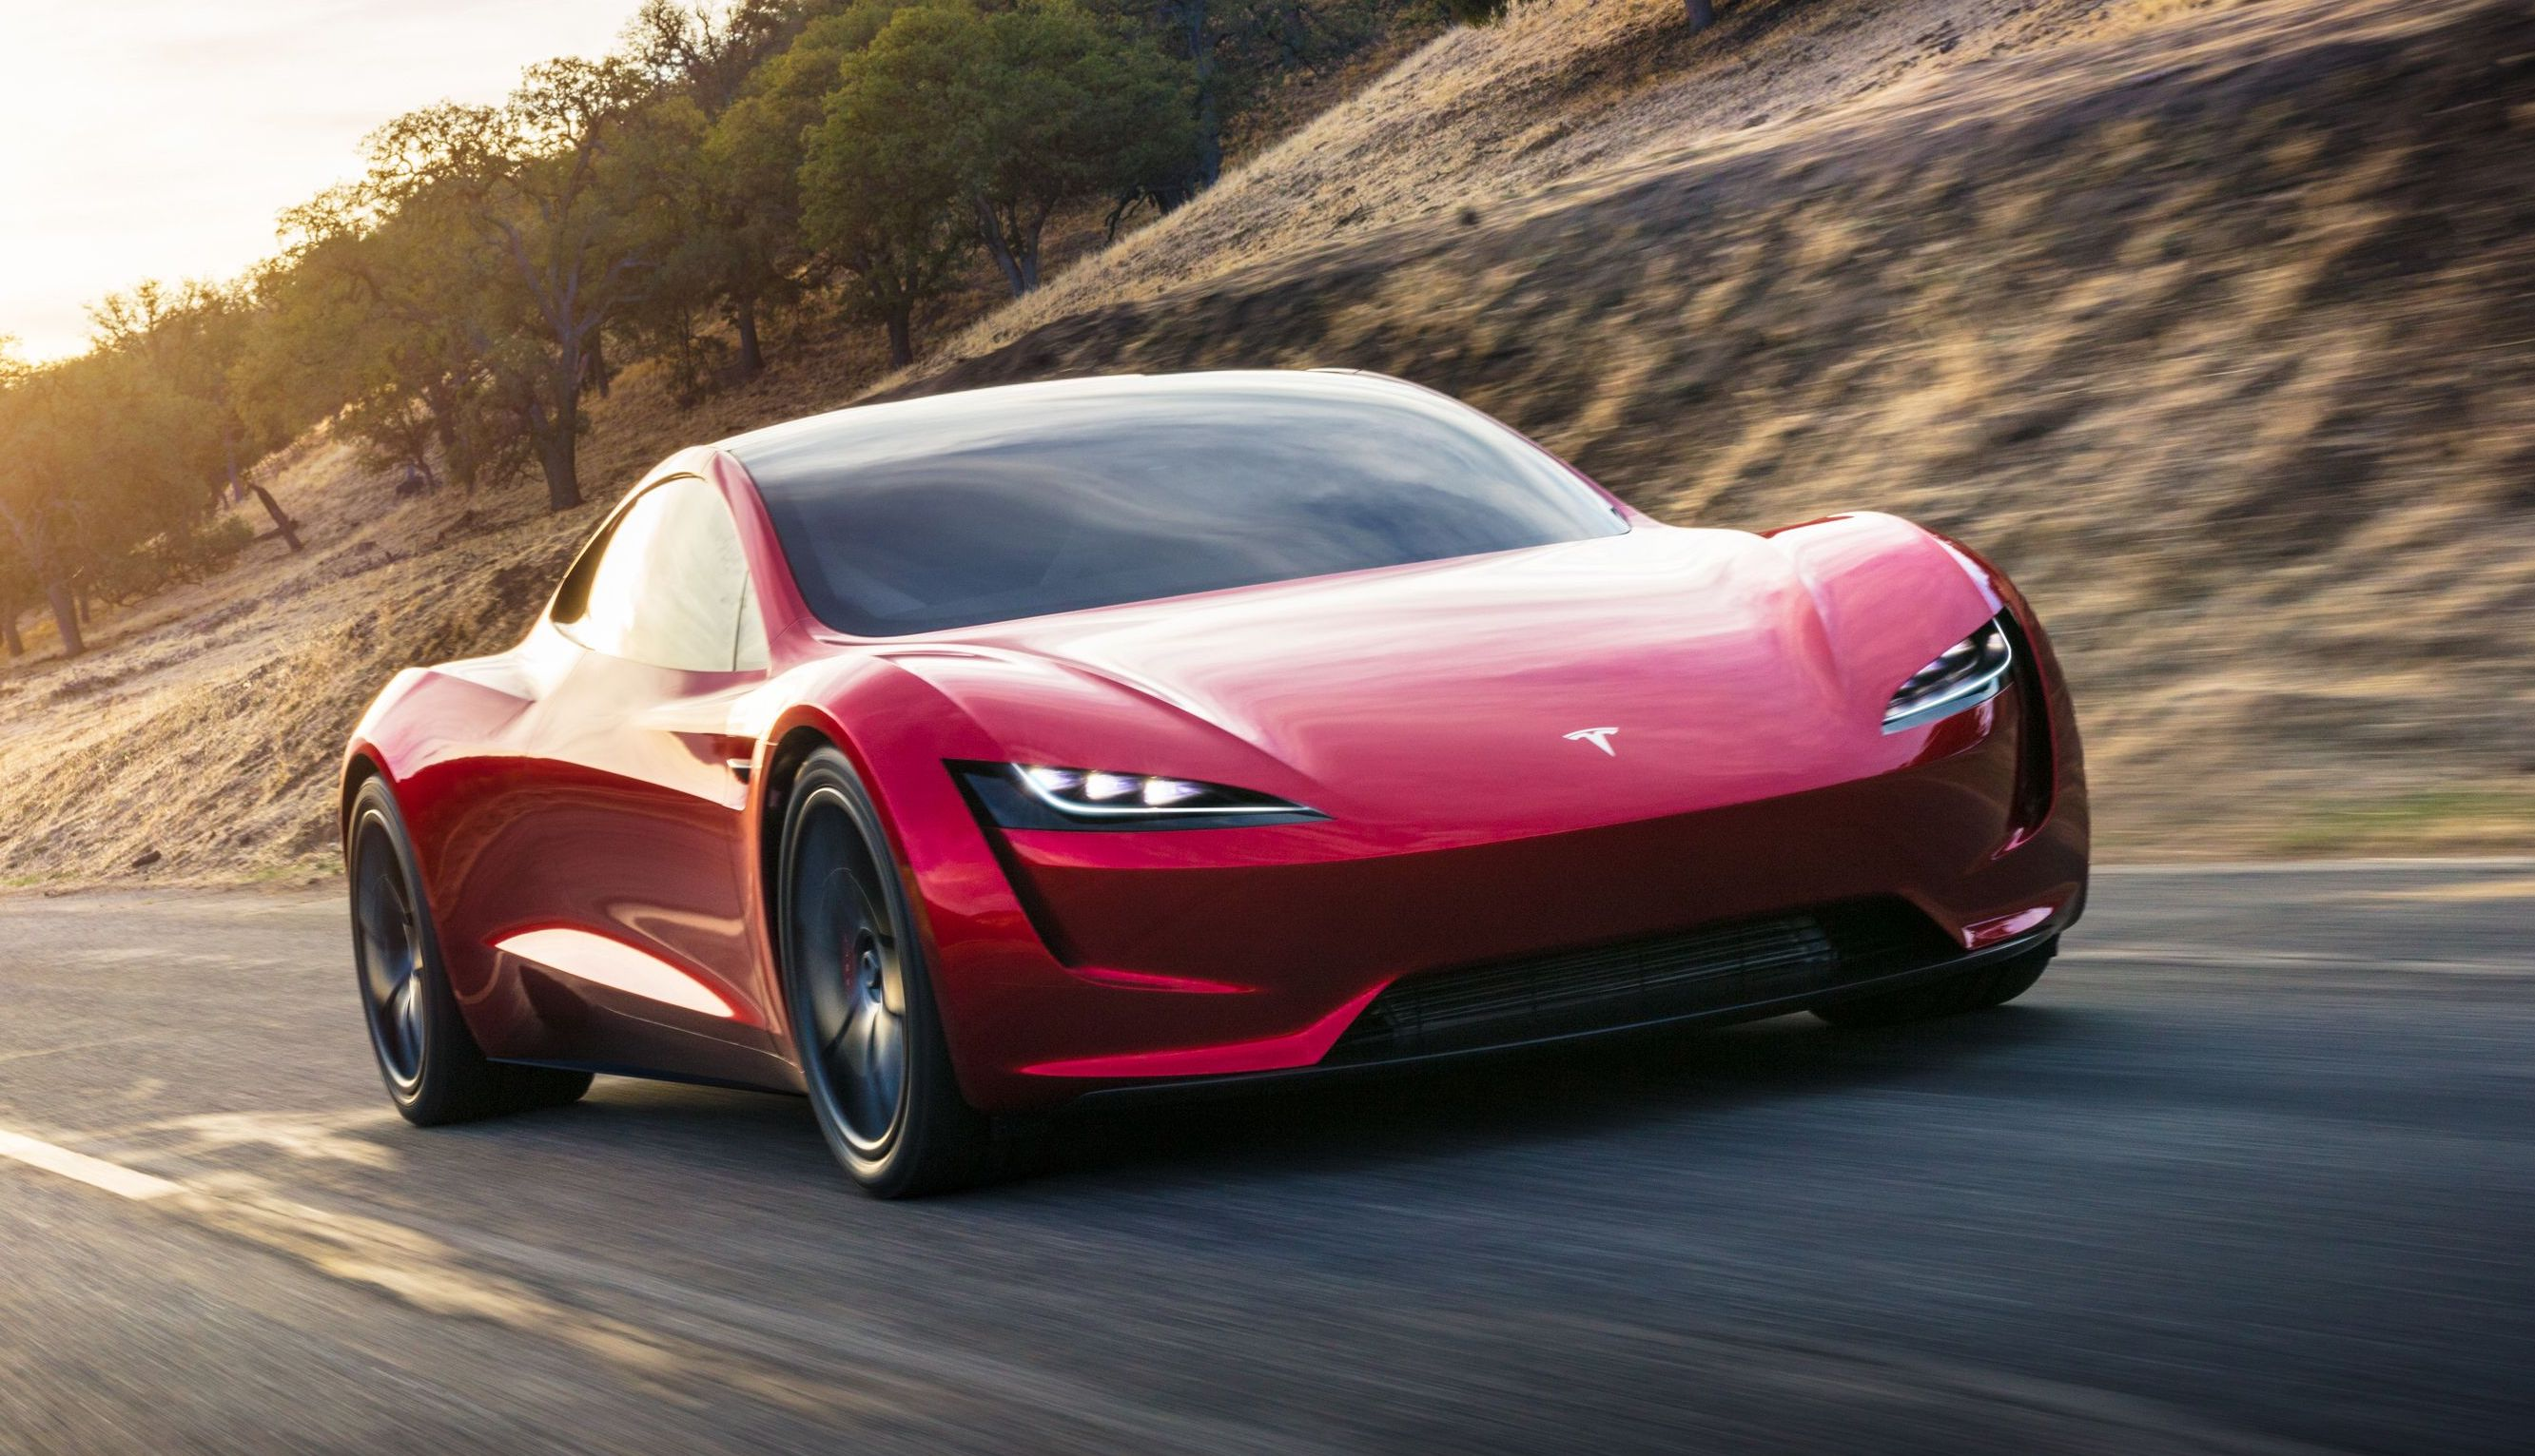 New EV Tax Credit in Budget Proposal Favors Domestic Production